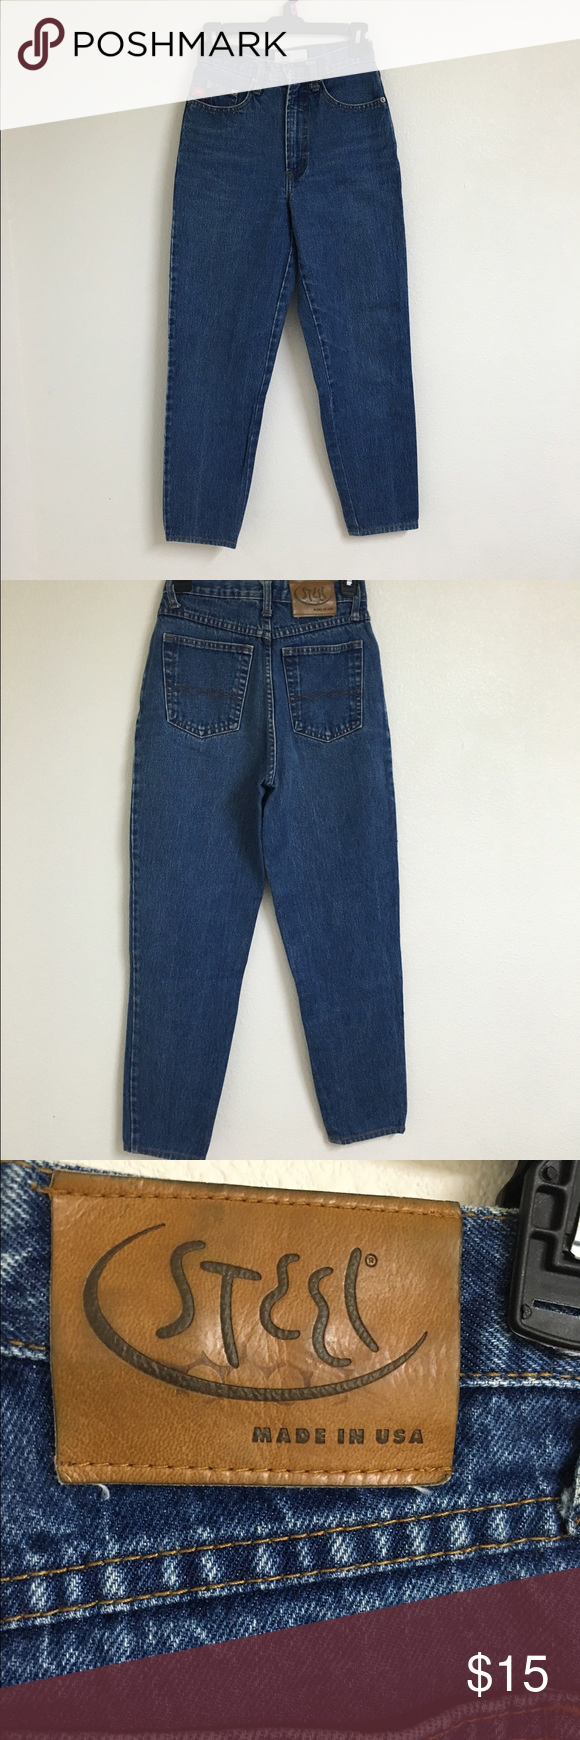 """Vintage Jeans Selling them for my mom! Size 5 jeans! Let me know if you need further measurements! 13"""" lying across flat. NOT LEVI'S. ONLY LISTED FOR EXPOSURE Levi's Jeans"""